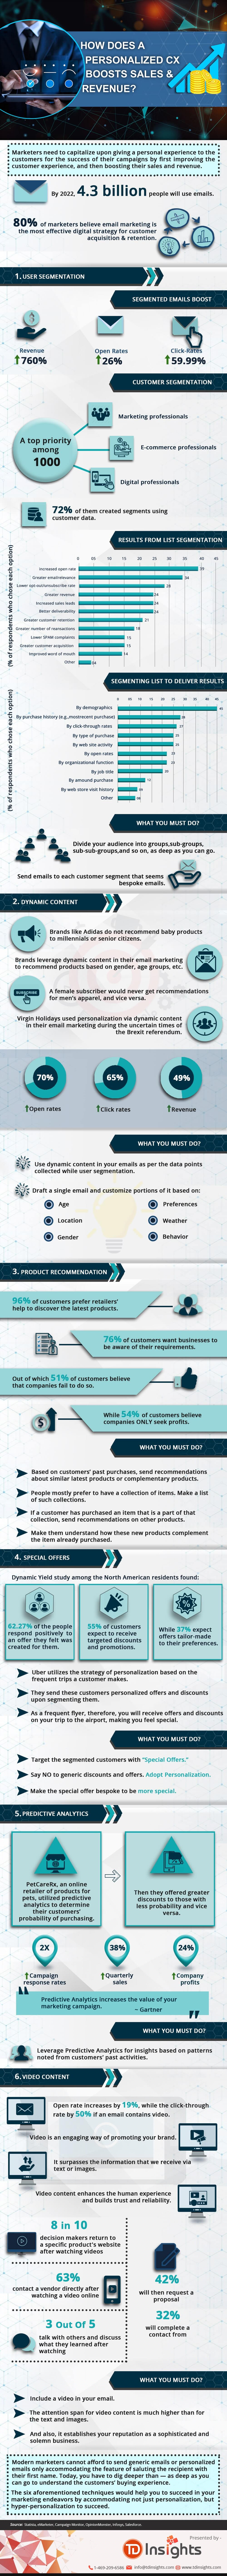 How Does a Personalized CX Boosts Sales & Revenue?